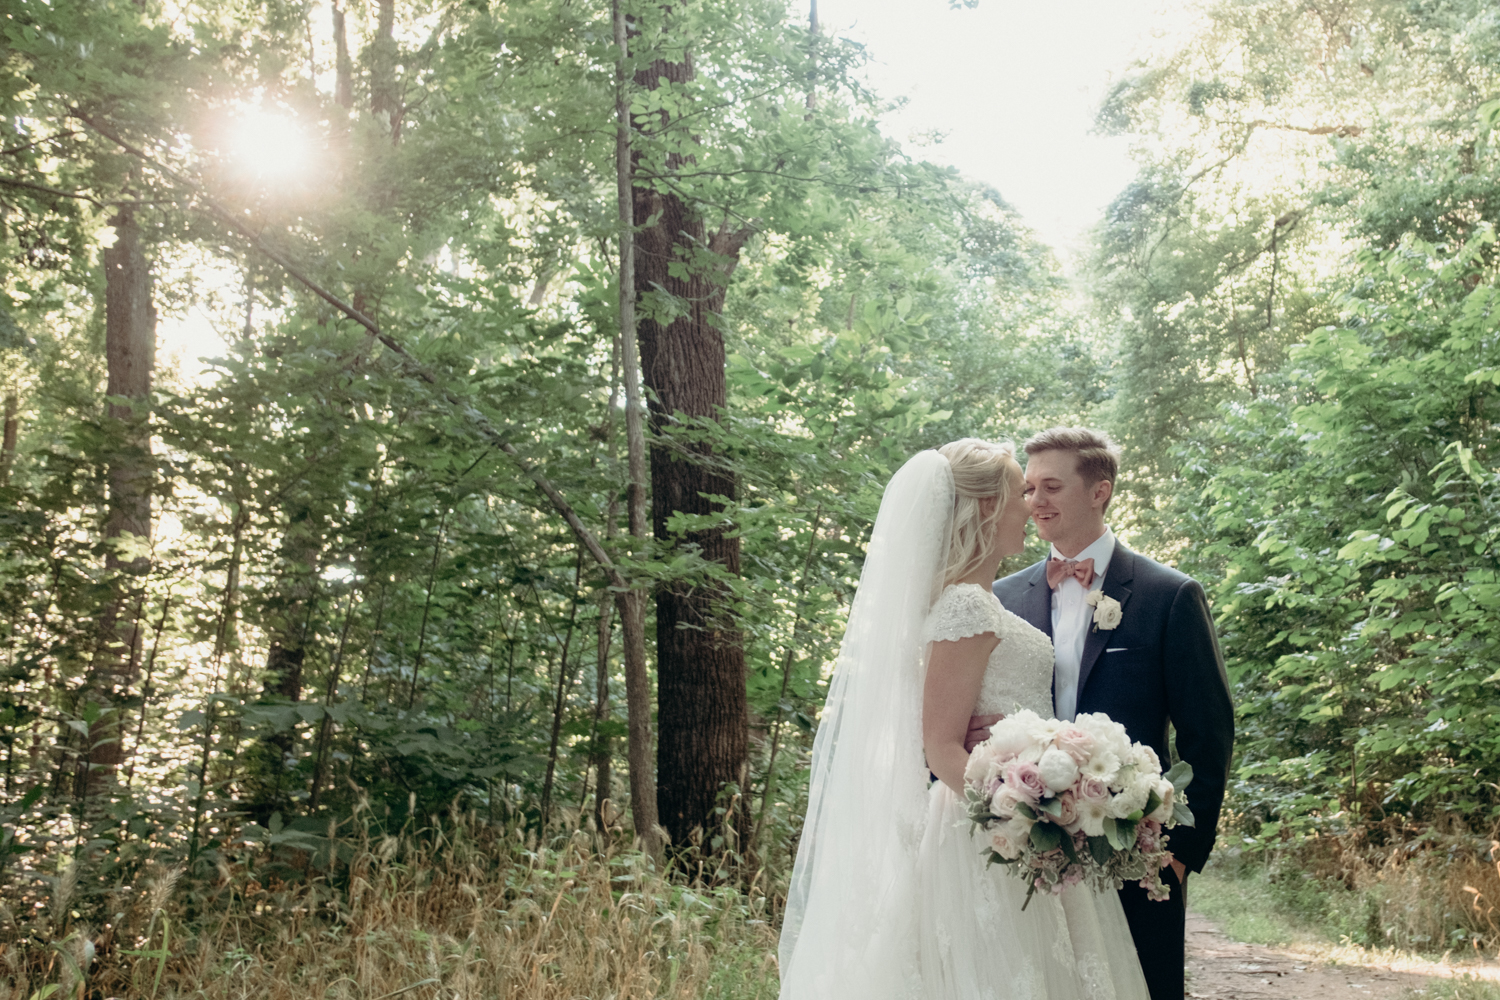 A husband and wife smile at one another in the woods after their outdoor wedding ceremony at Lansdowne Resort.